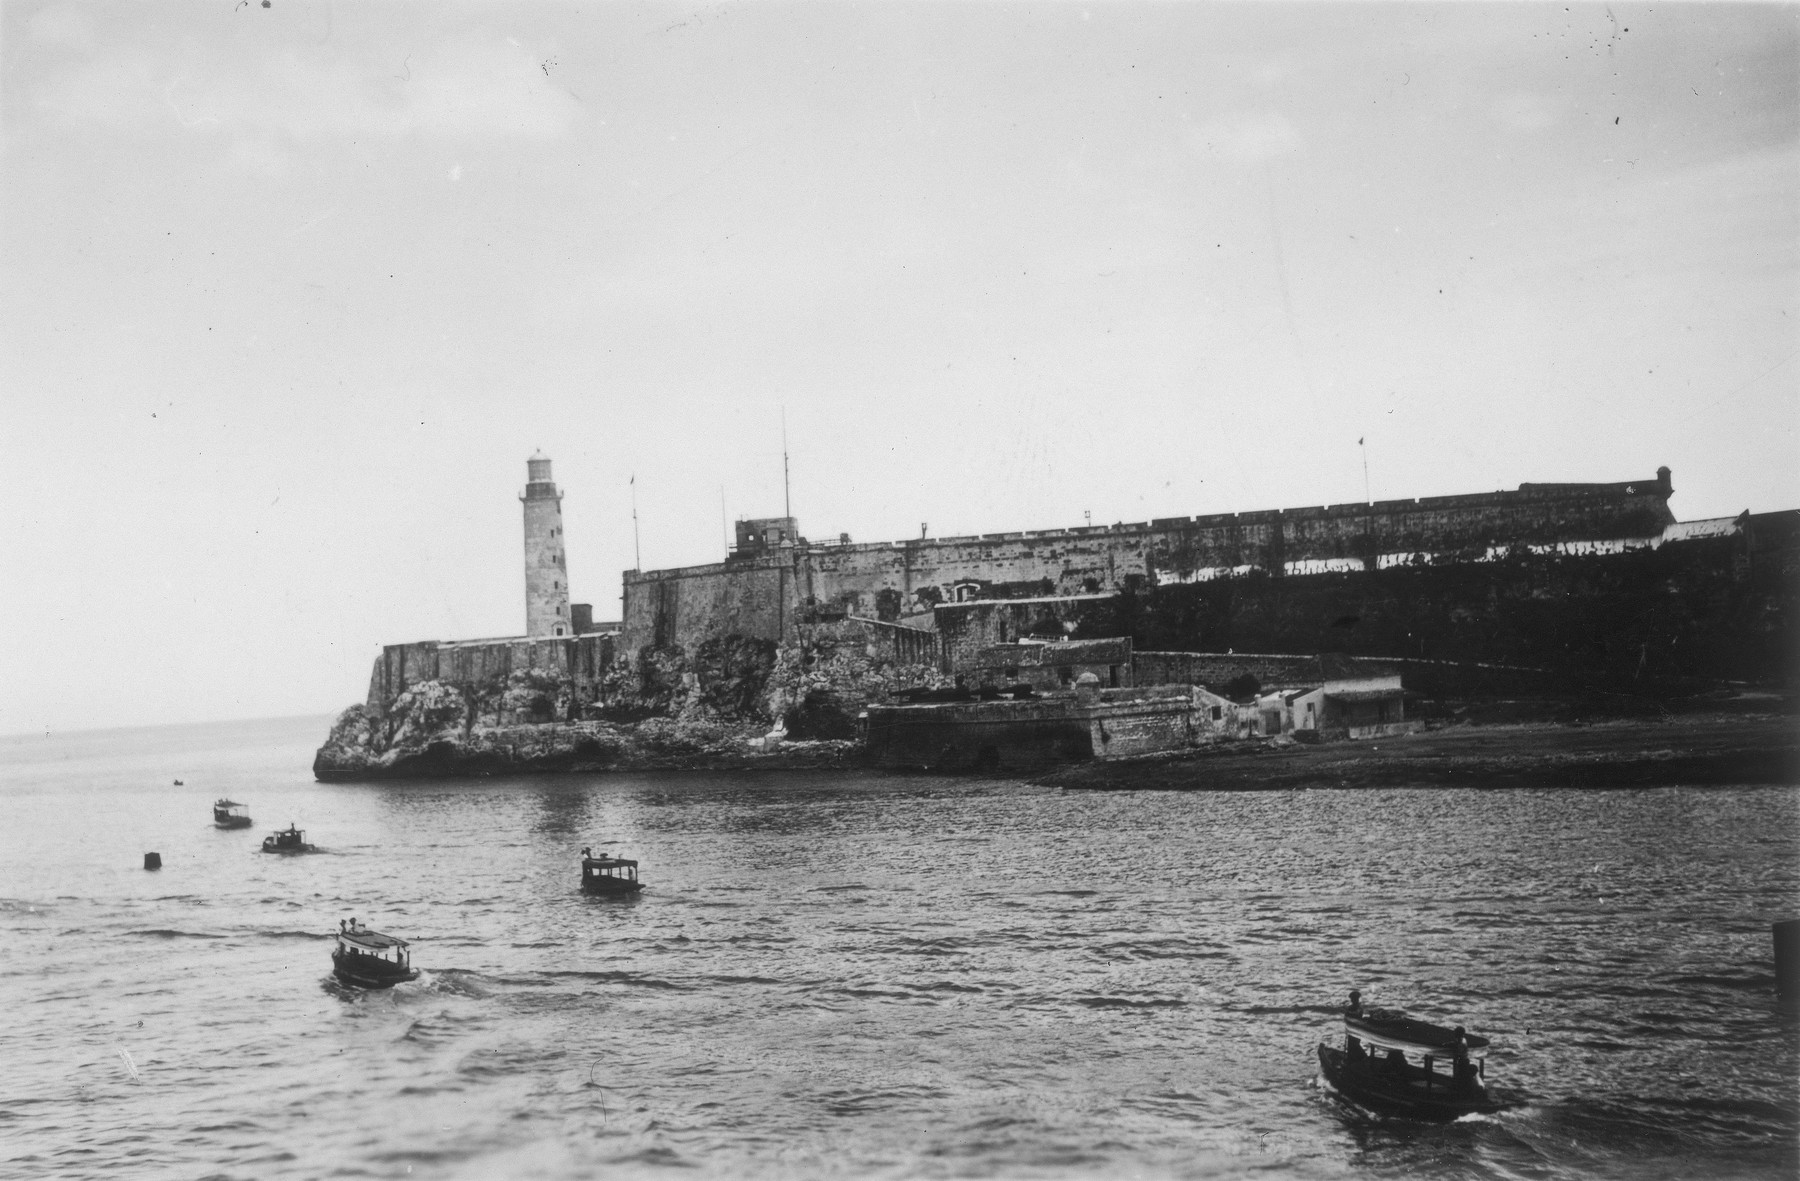 View over the railing of the St. Louis of land and lighthouse with small covered boats in the water.